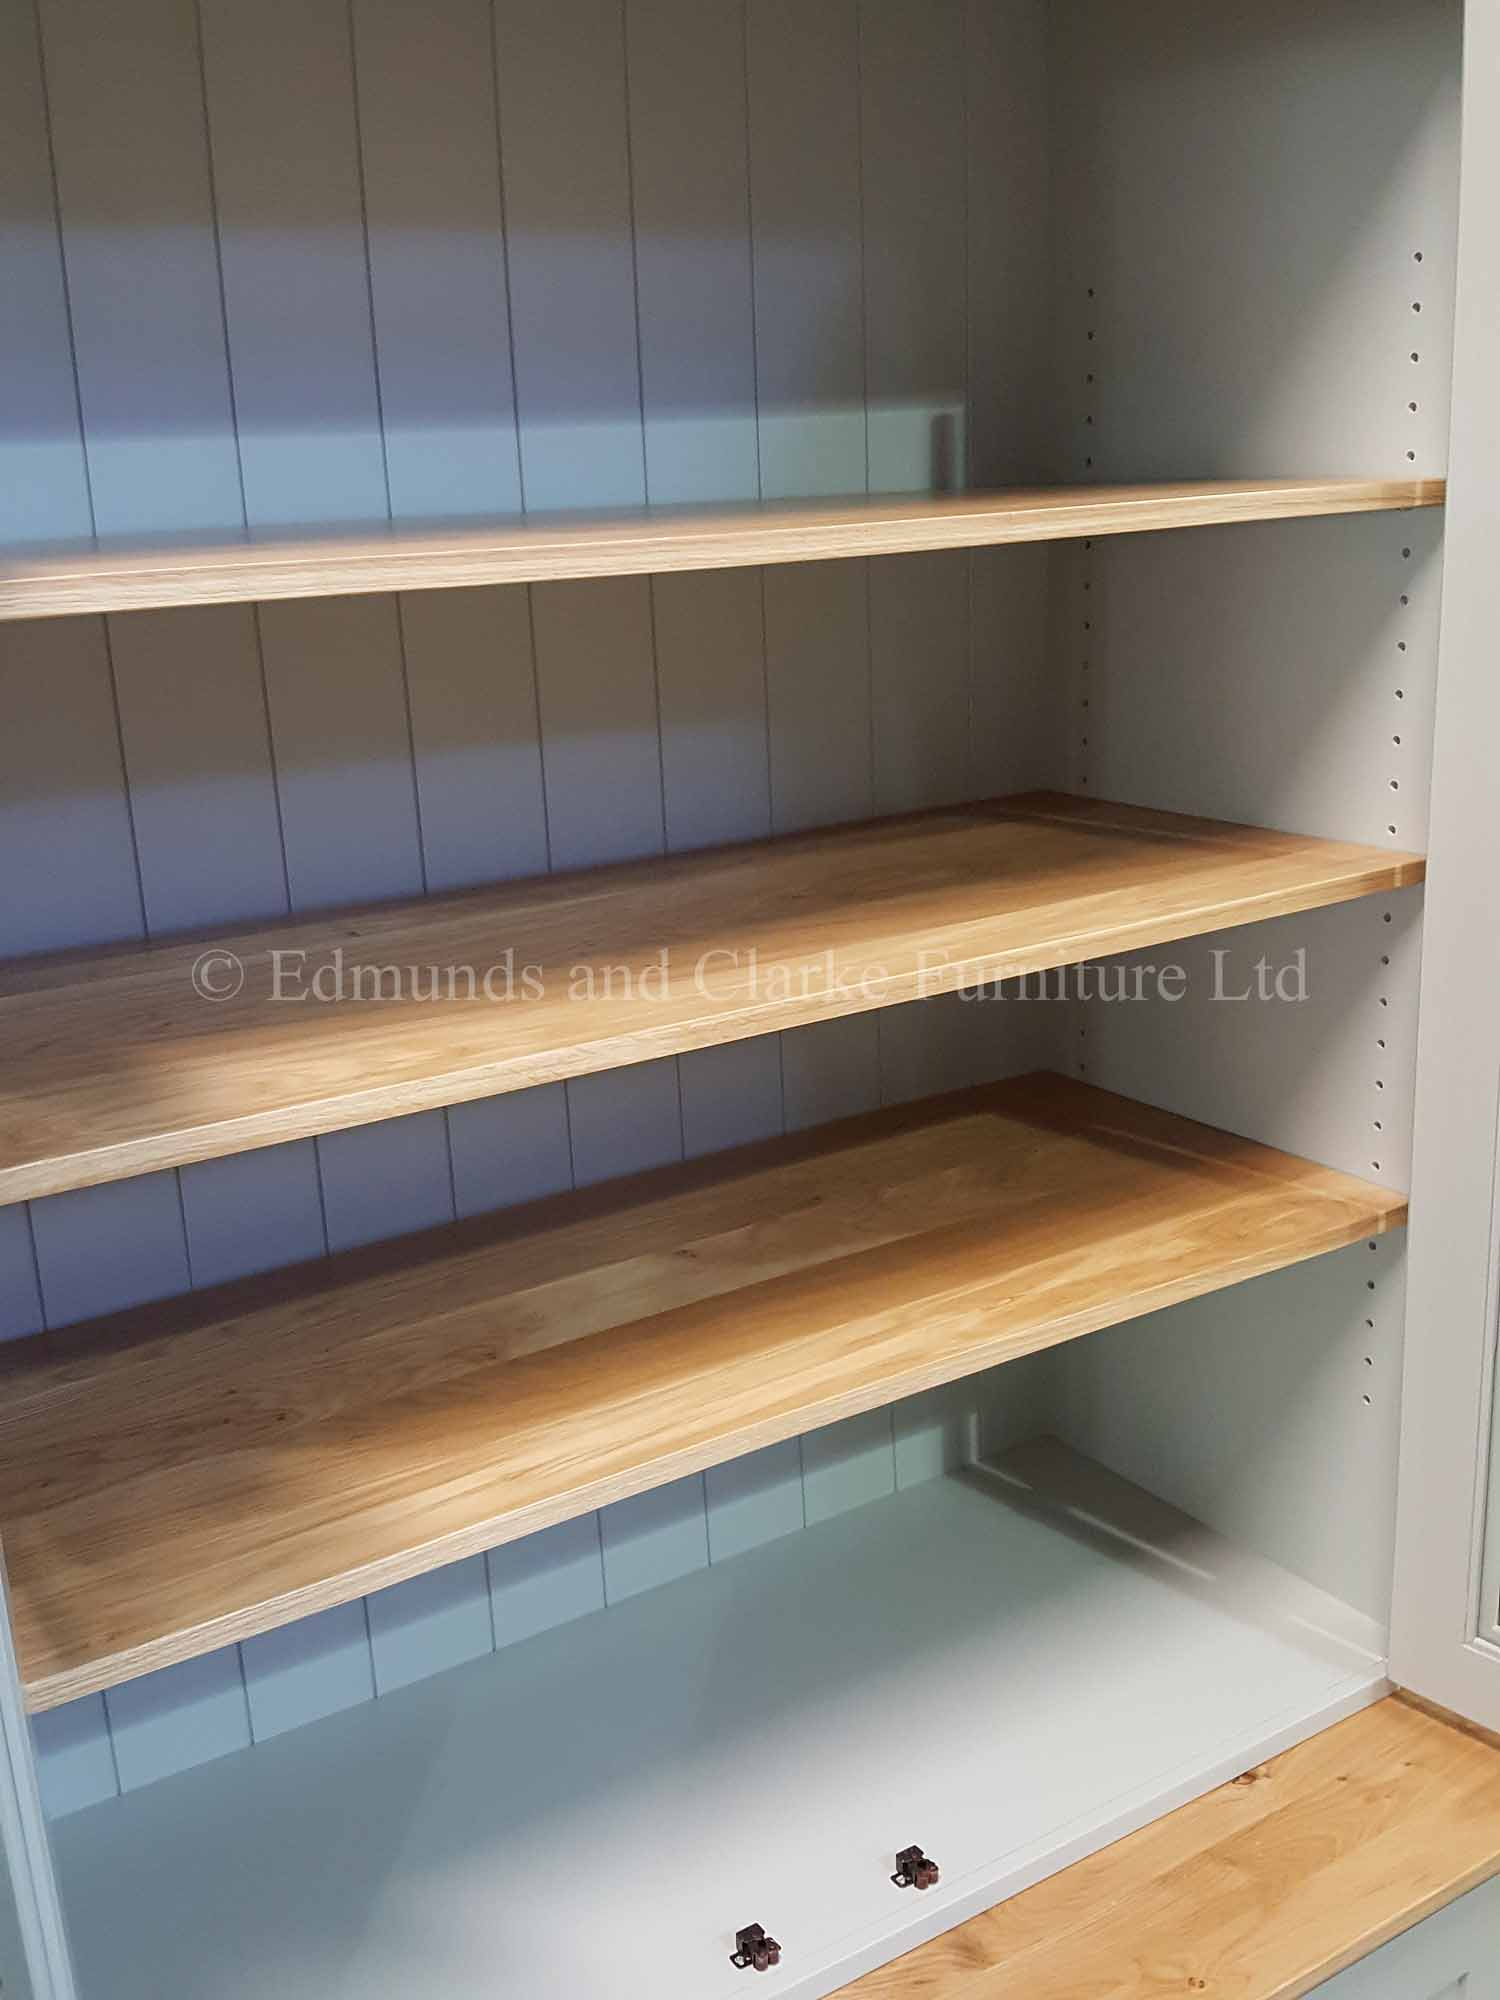 Workstation and shelving with glazed doors and adjustable shelves painted